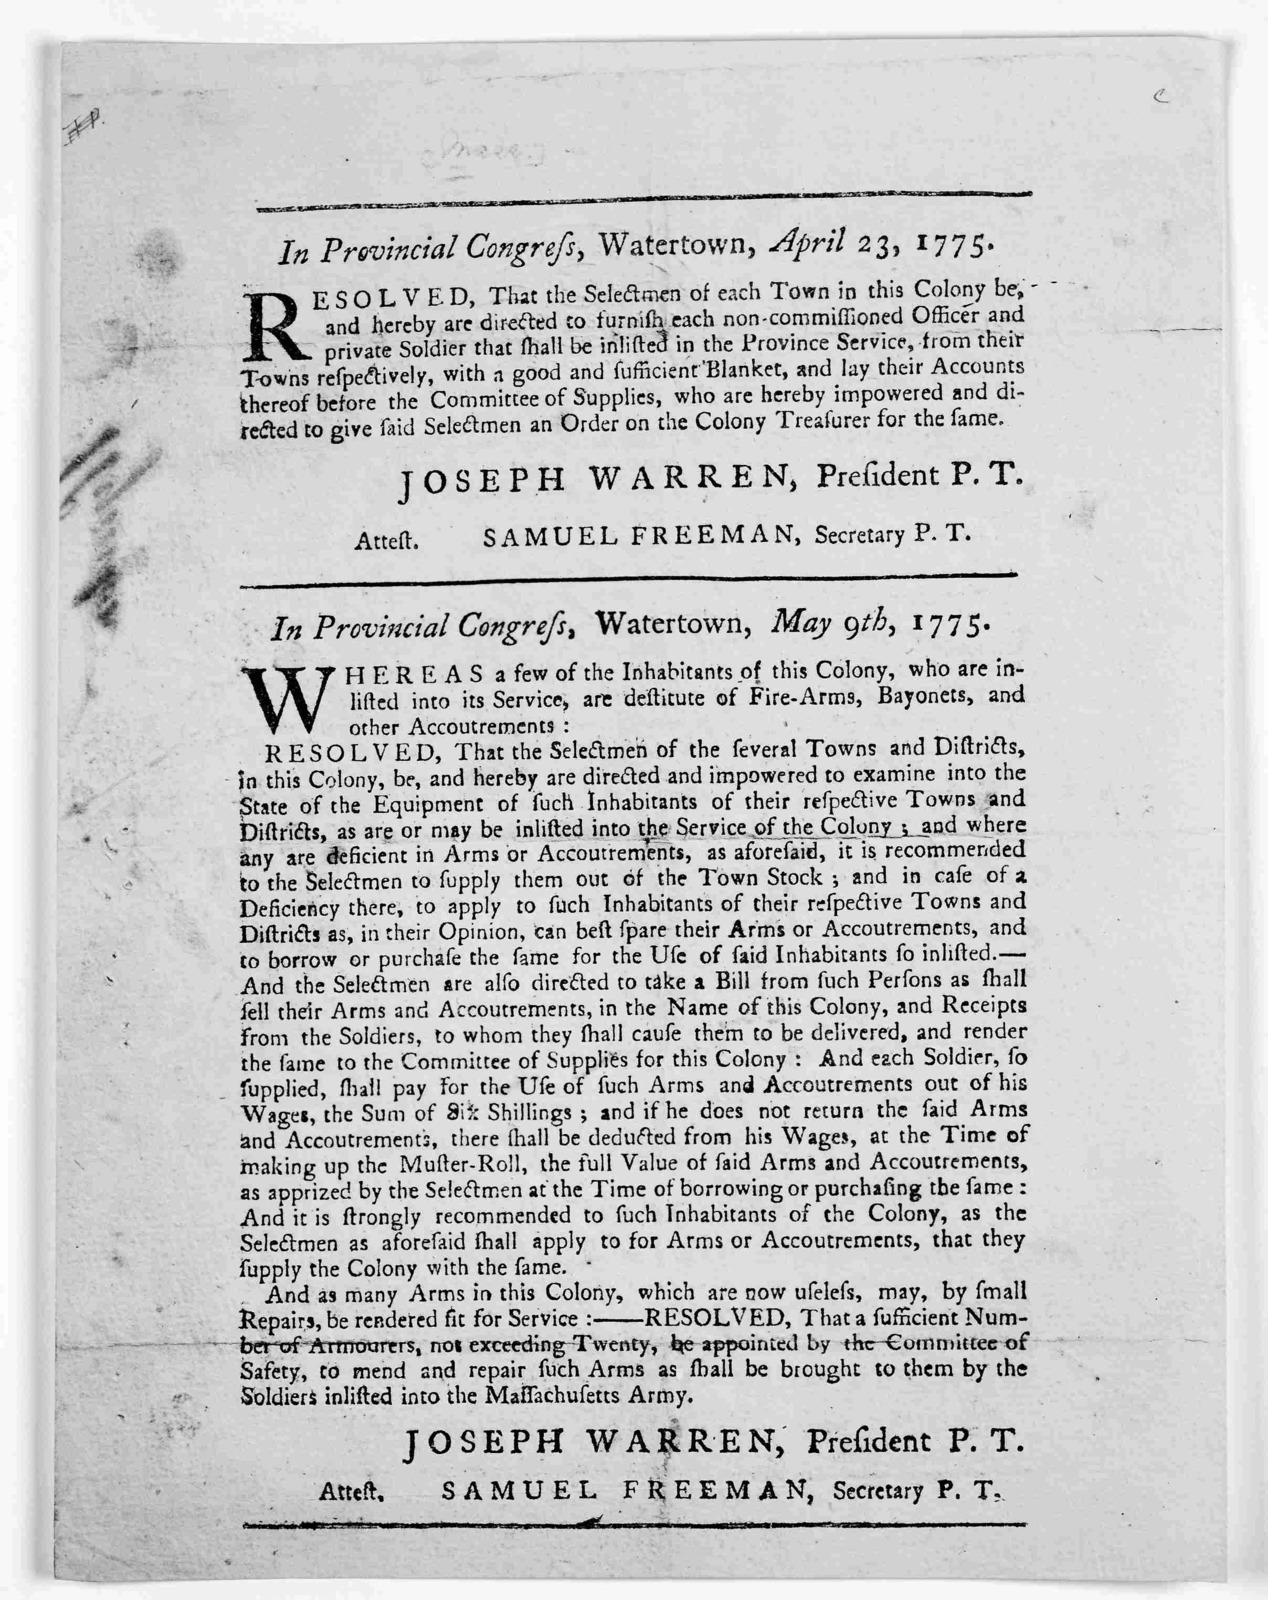 In Provincial congress, Watertown, April 23, 1775. Resolved that the selectmen of each town in this Colony be, and hereby are directed to furnish each non-commissioned officer and private soldier that shall be inlisted in the province service, f